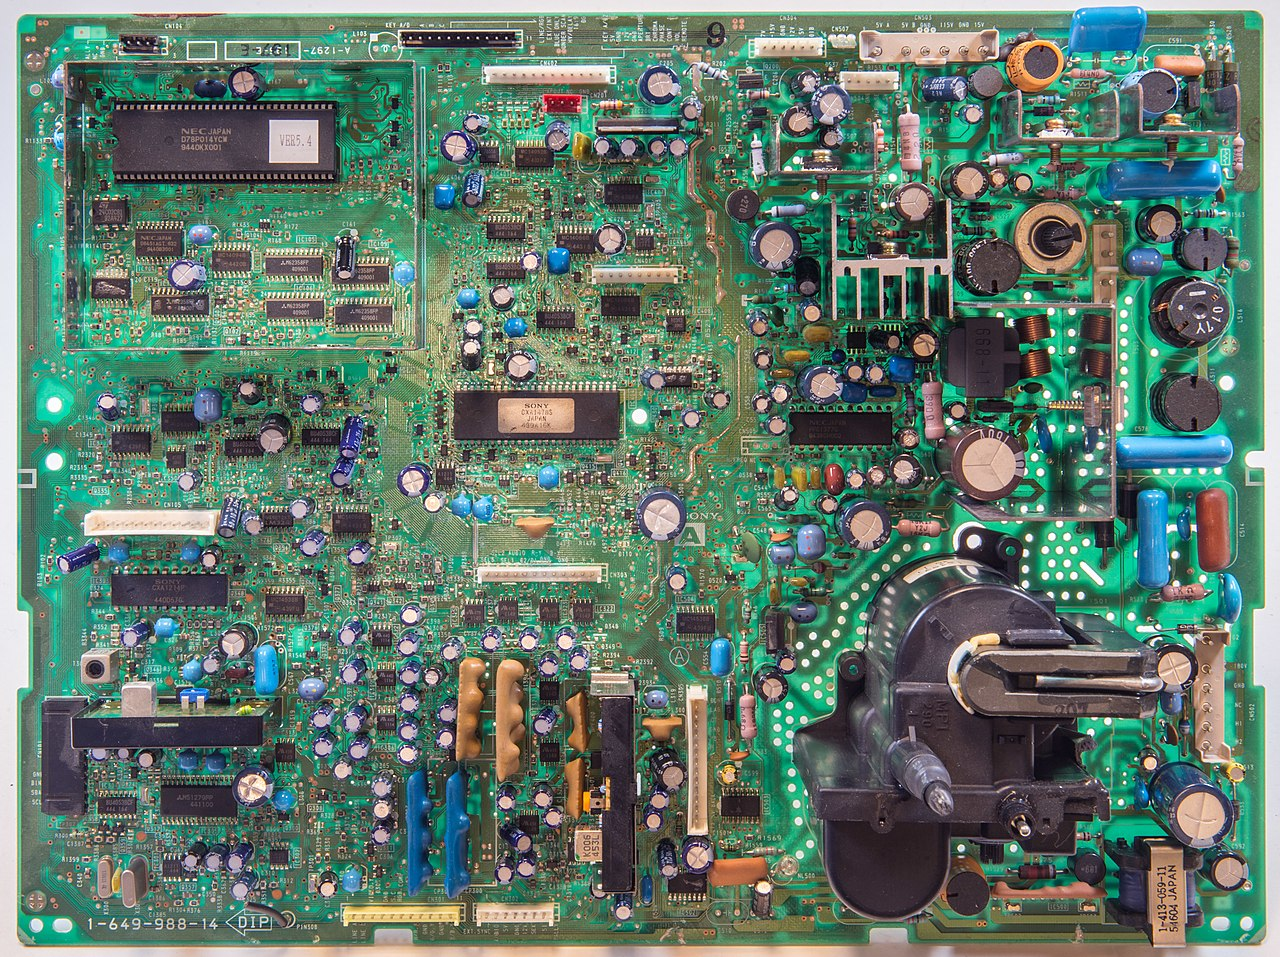 "A circuit board for a Sony Trinitron TV. <a href=""https://commons.wikimedia.org/wiki/File:Triniton-platine2a_hg.jpg"">Courtesy of Wikimedia Commons/Hannes Grobe</a>."